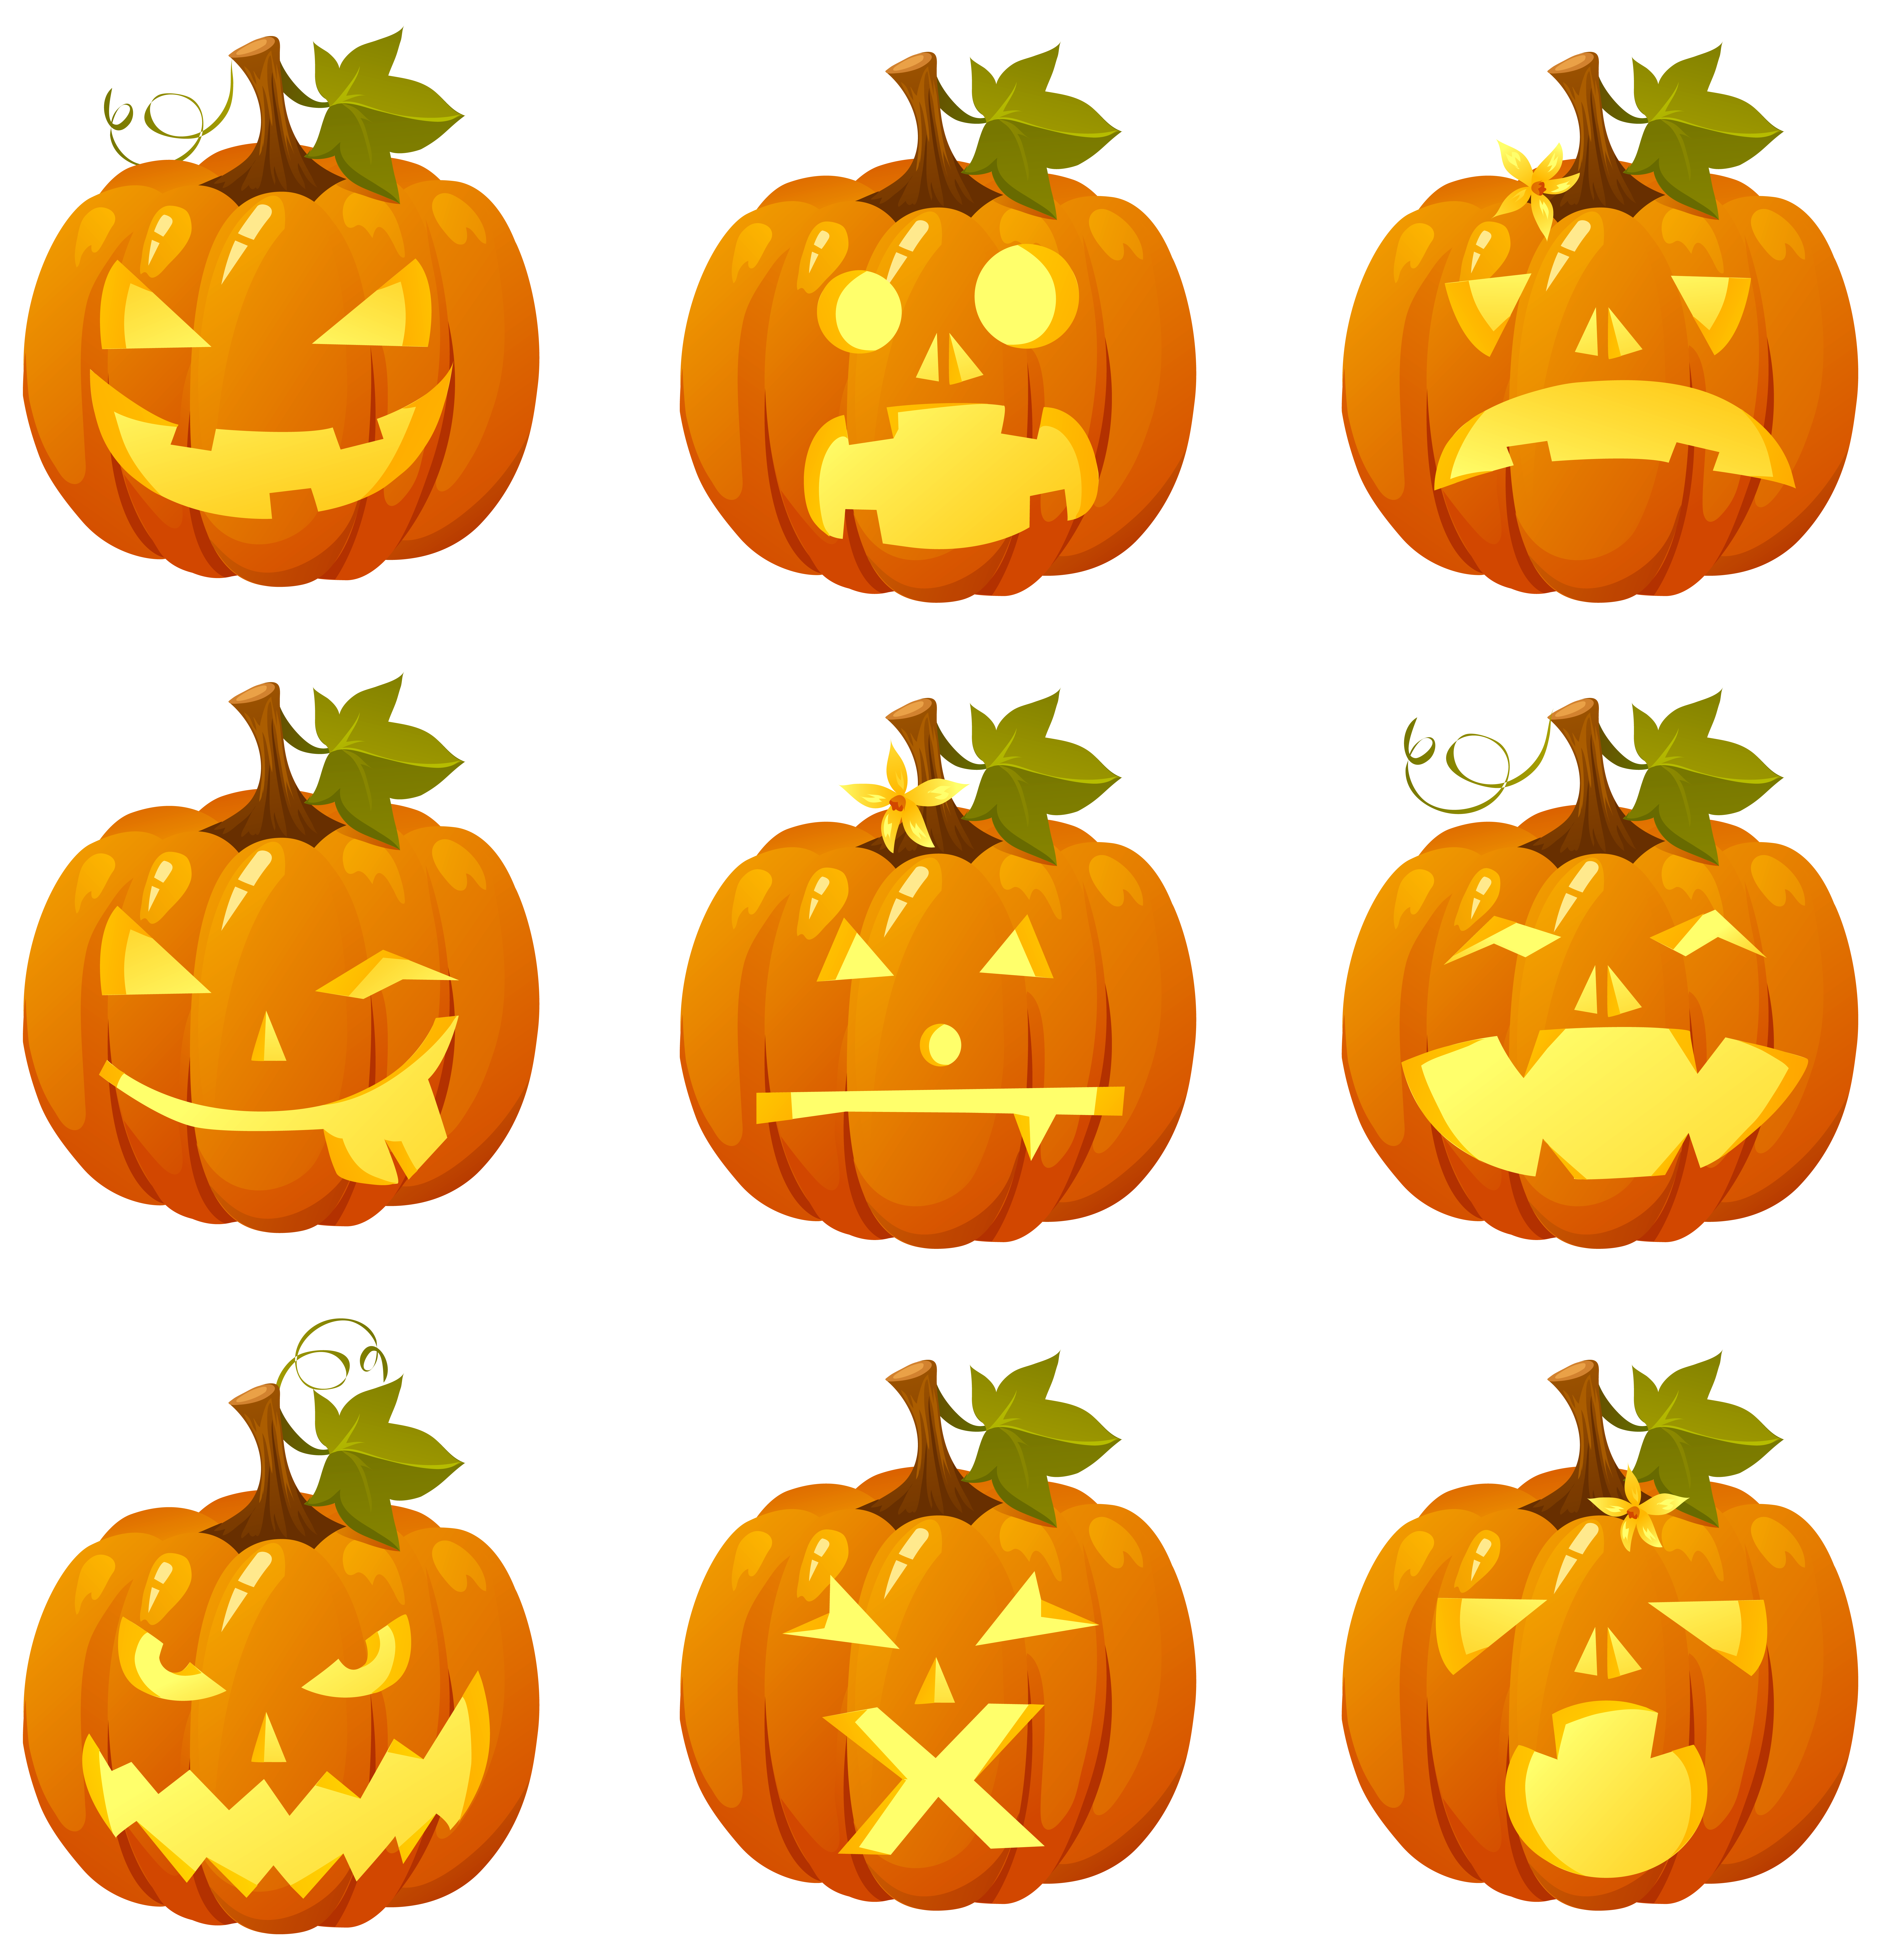 Creepy pumpkin flaming clipart clipart transparent library Halloween Pumpkins Clipart – Halloween Arts | fall stuff | Pinterest clipart transparent library